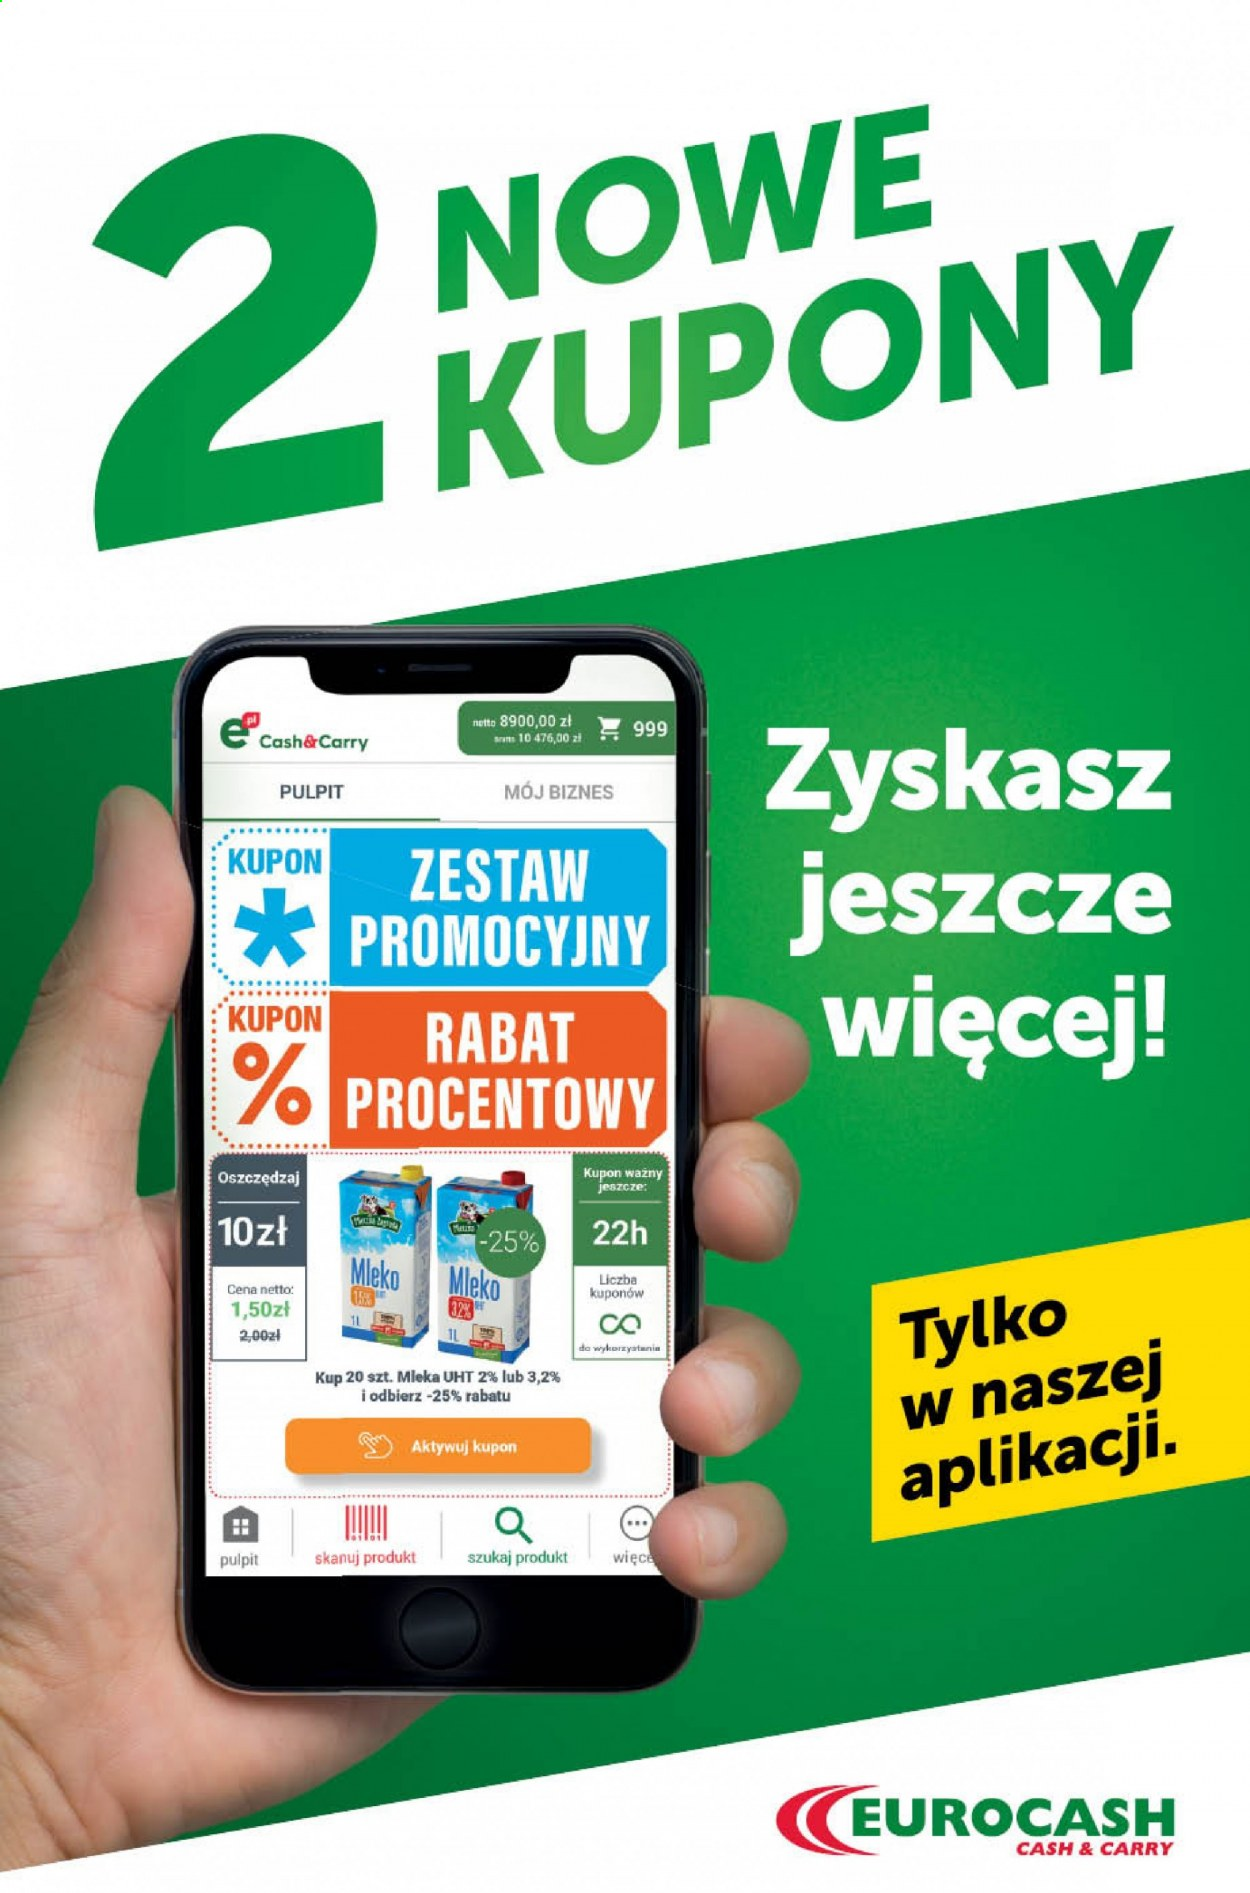 Gazetka Eurocash Cash & Carry - 3.5.2021. - 16.5.2021.. Strona 2.